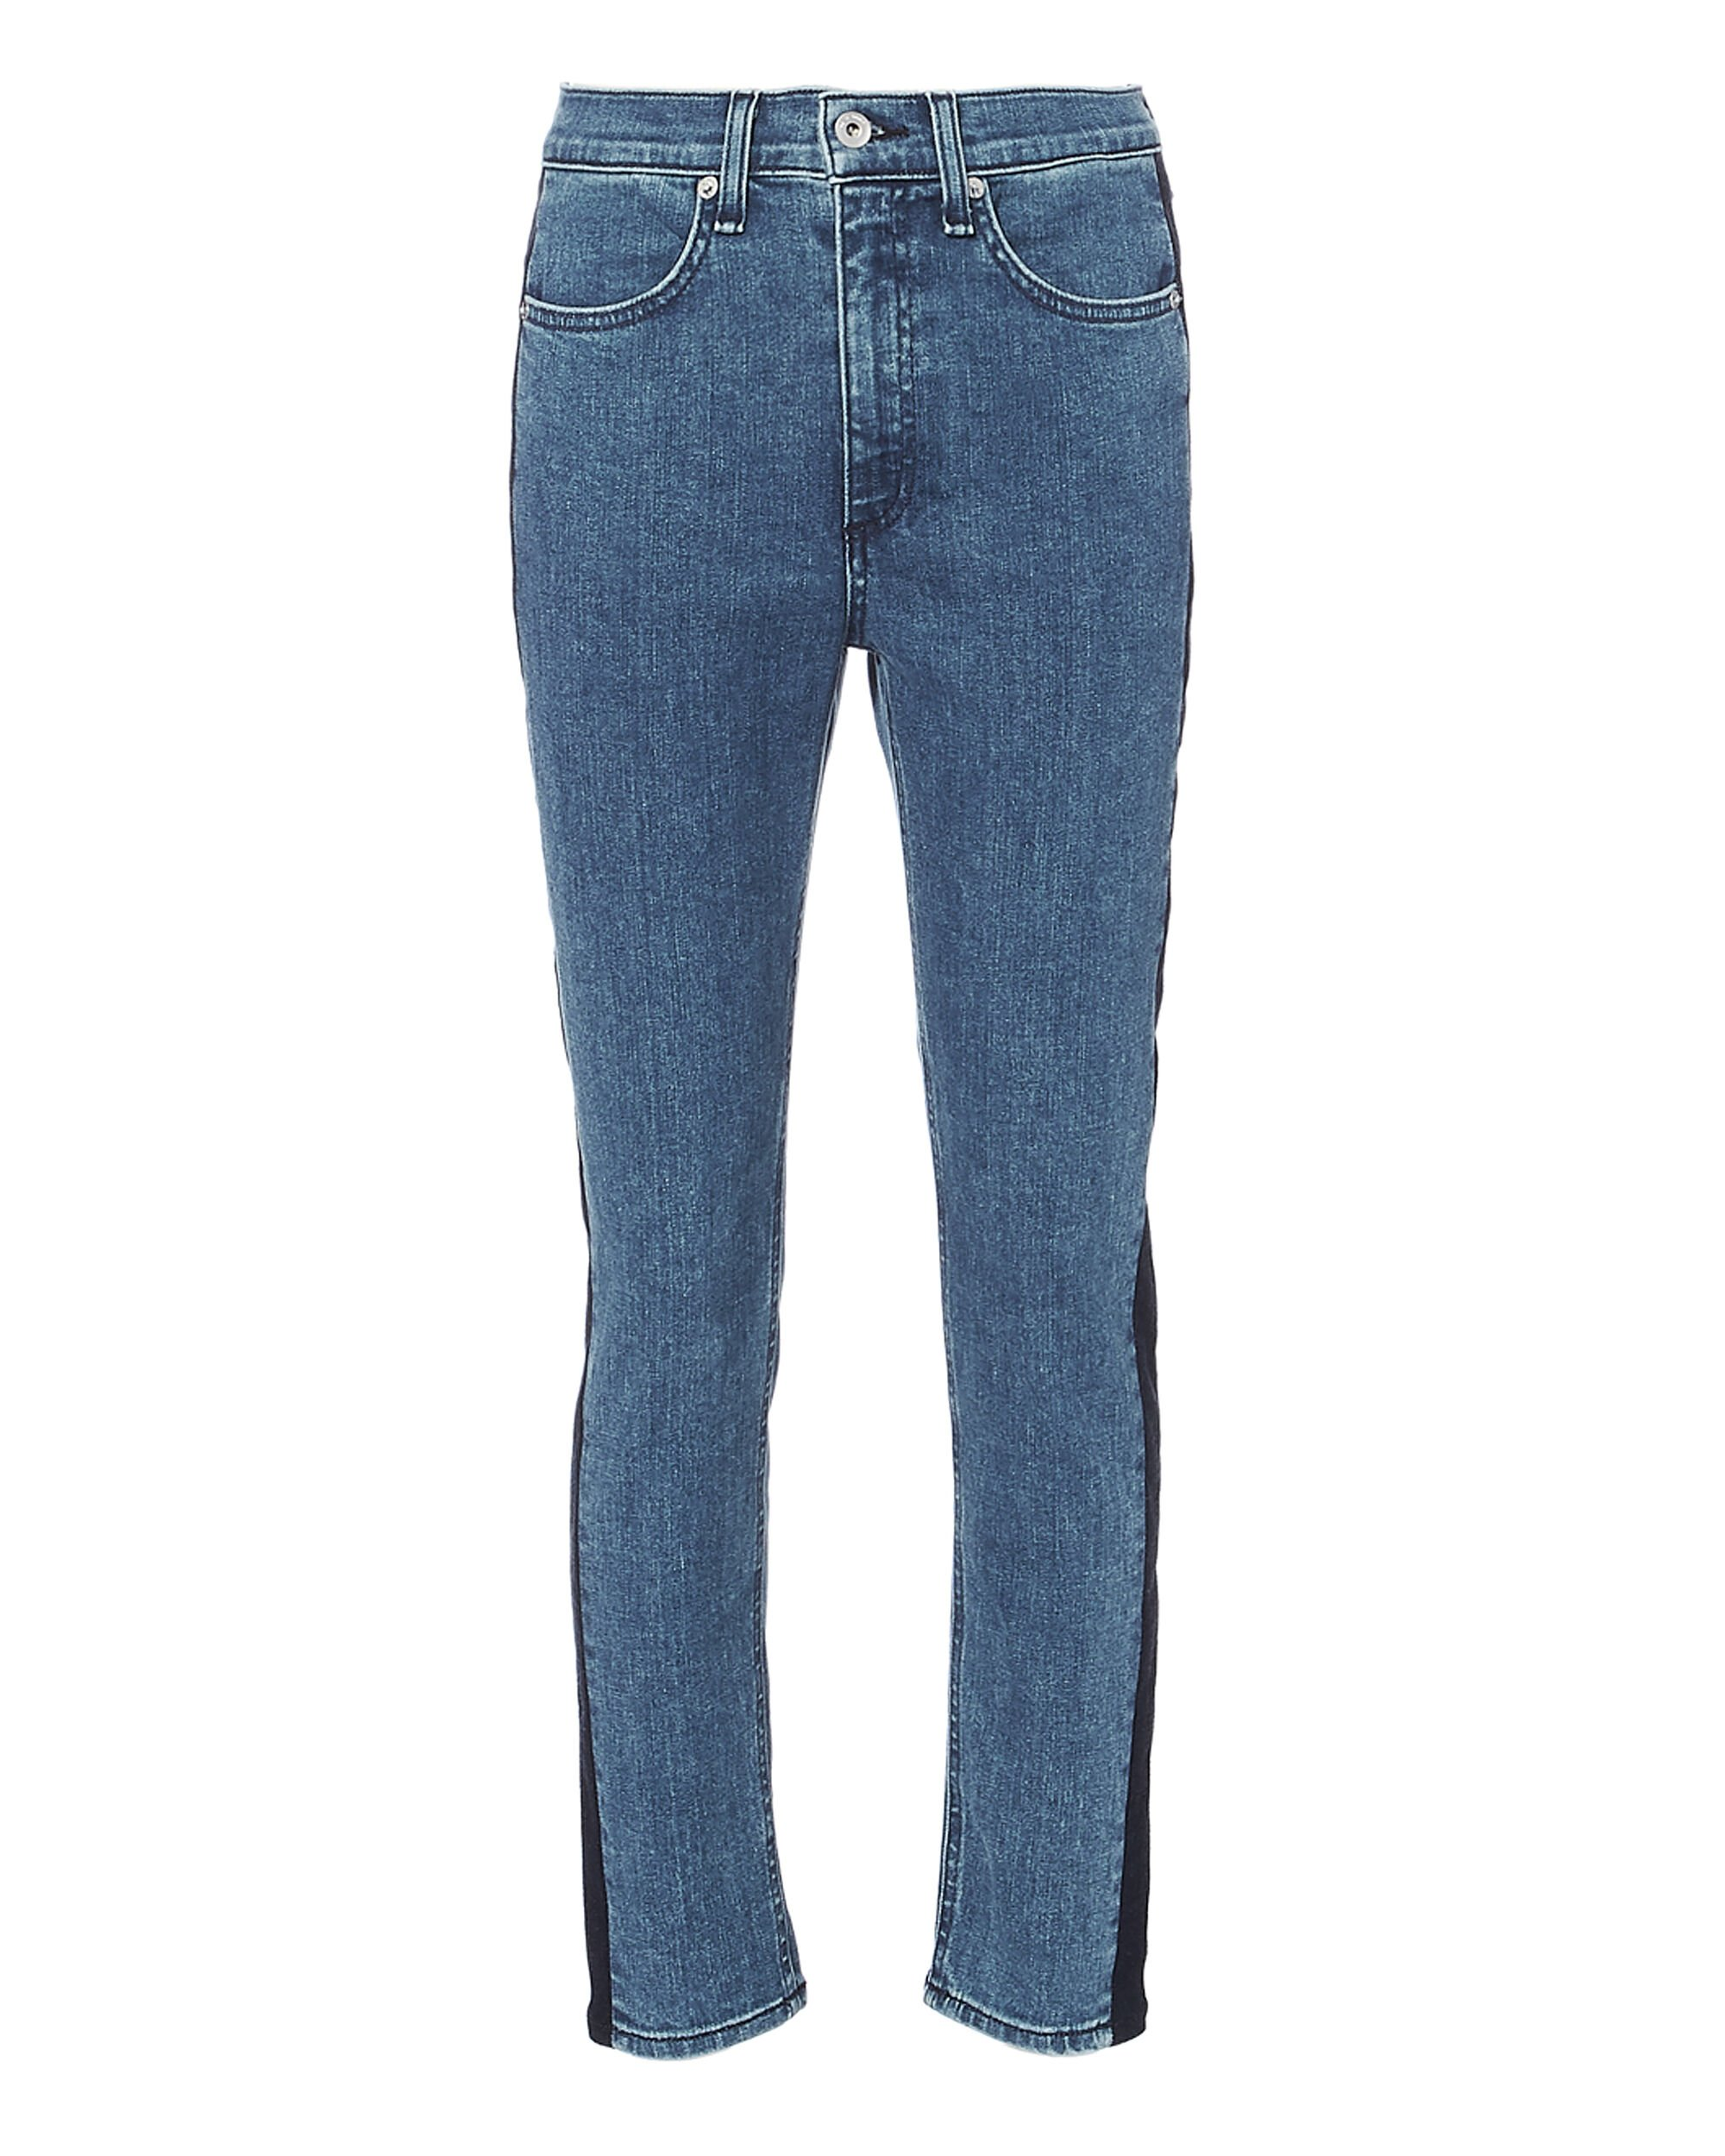 Mazie Two-Tone Skinny Jeans, MULTI, hi-res